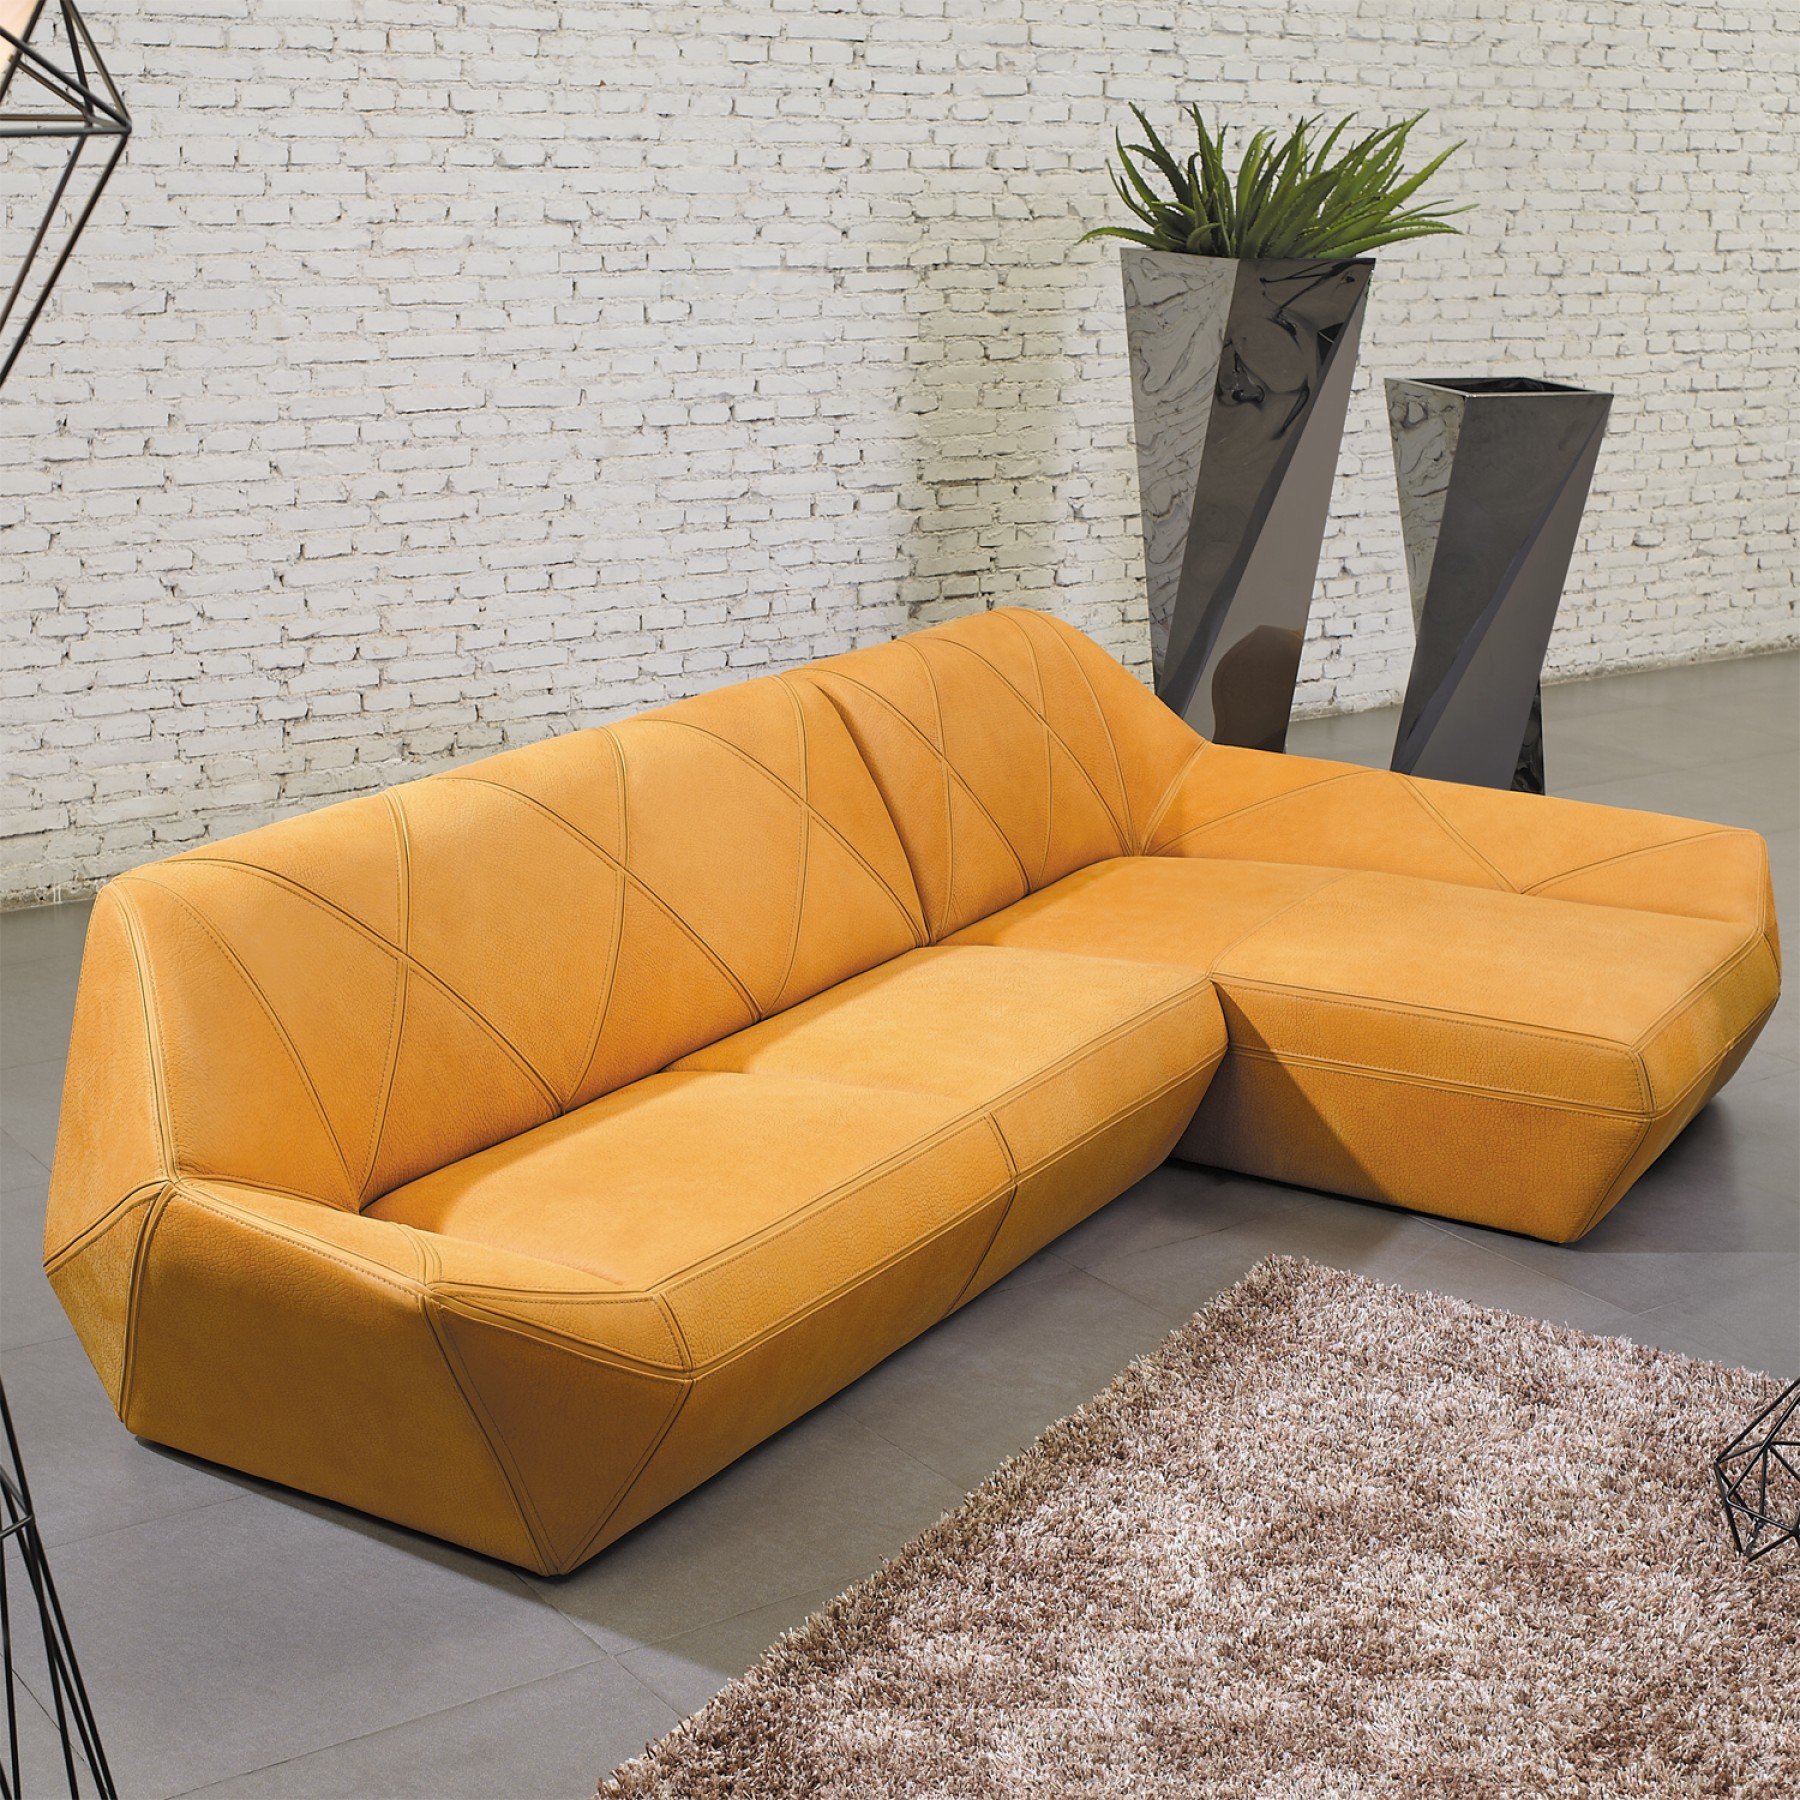 Diamante chaise sofa beyond furniture for Chaise furniture sale